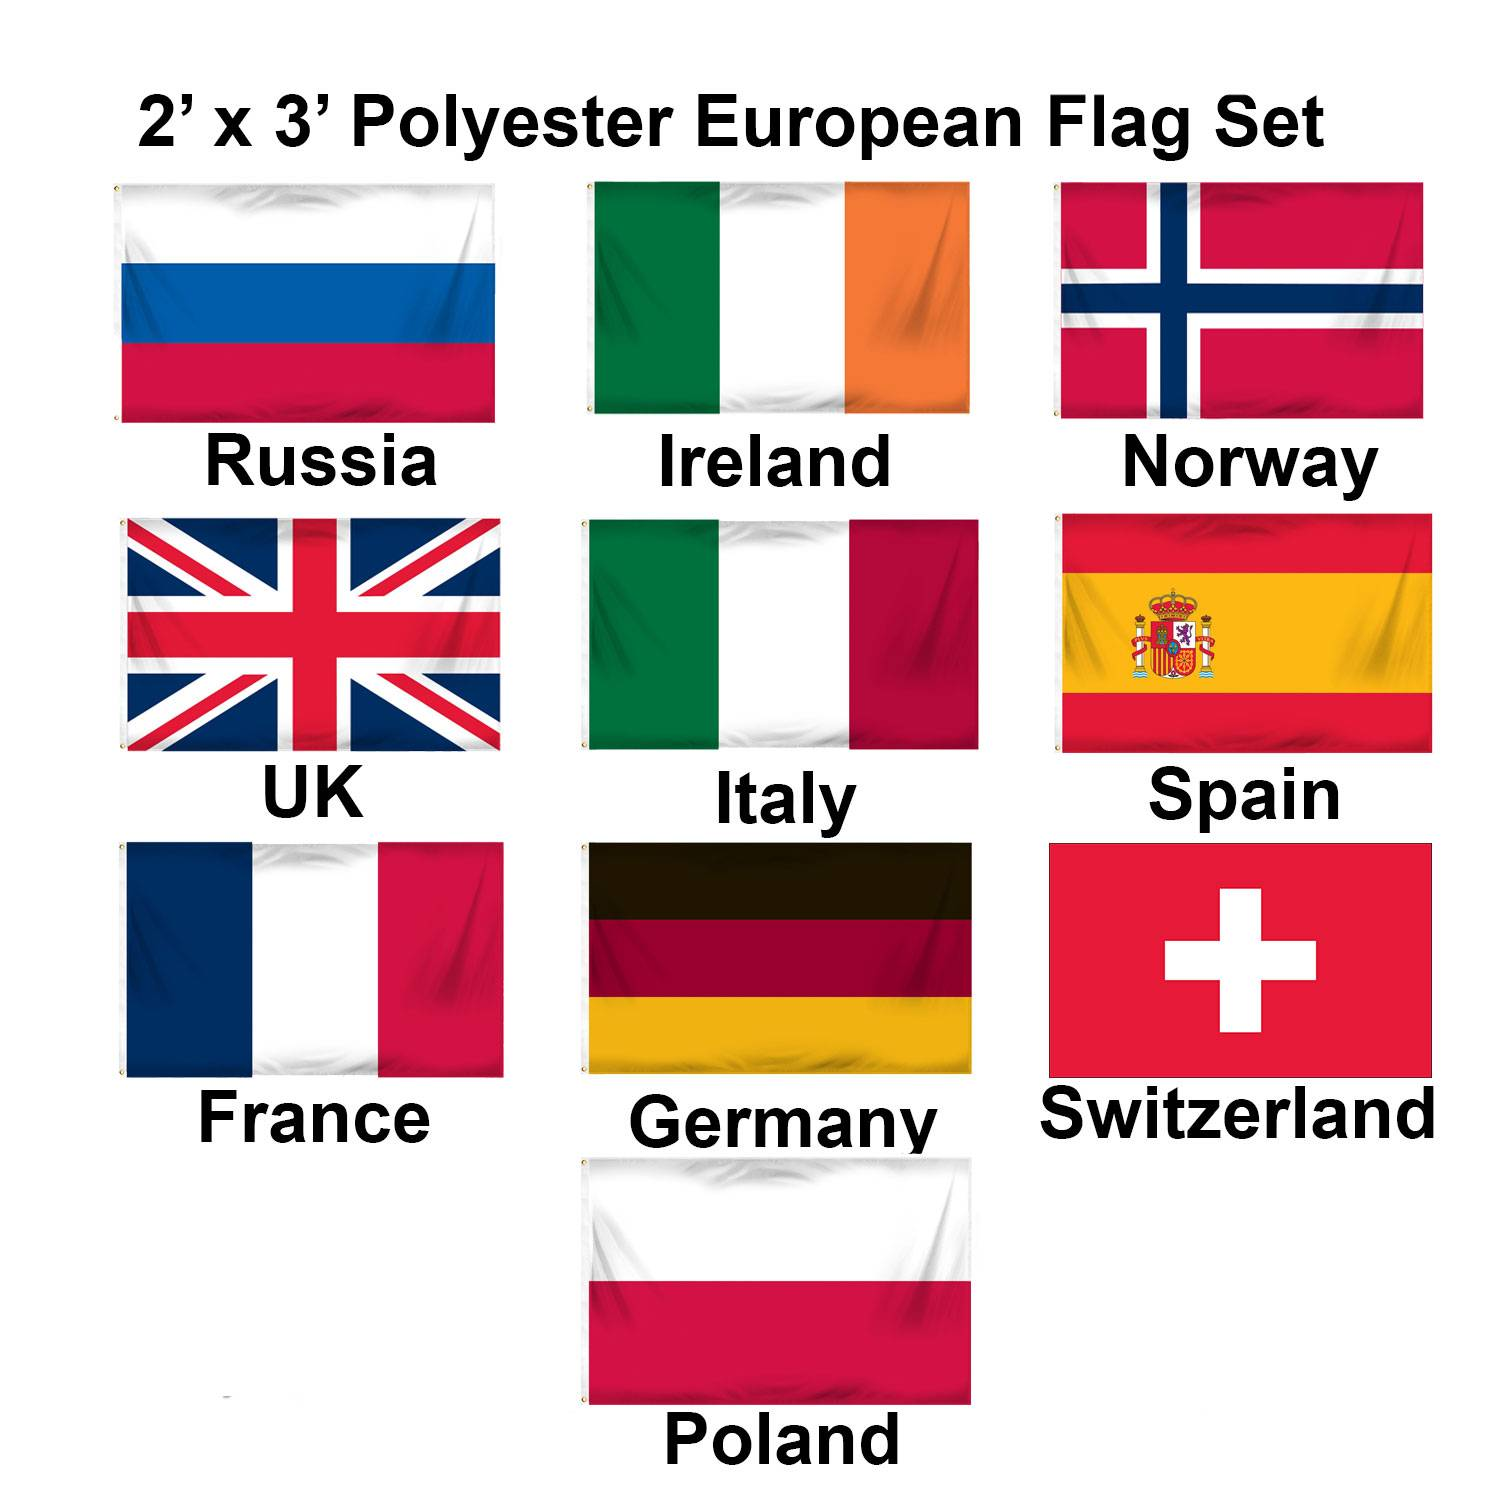 (2x3ft) Set of 10 European Polyester Flags - Set 1